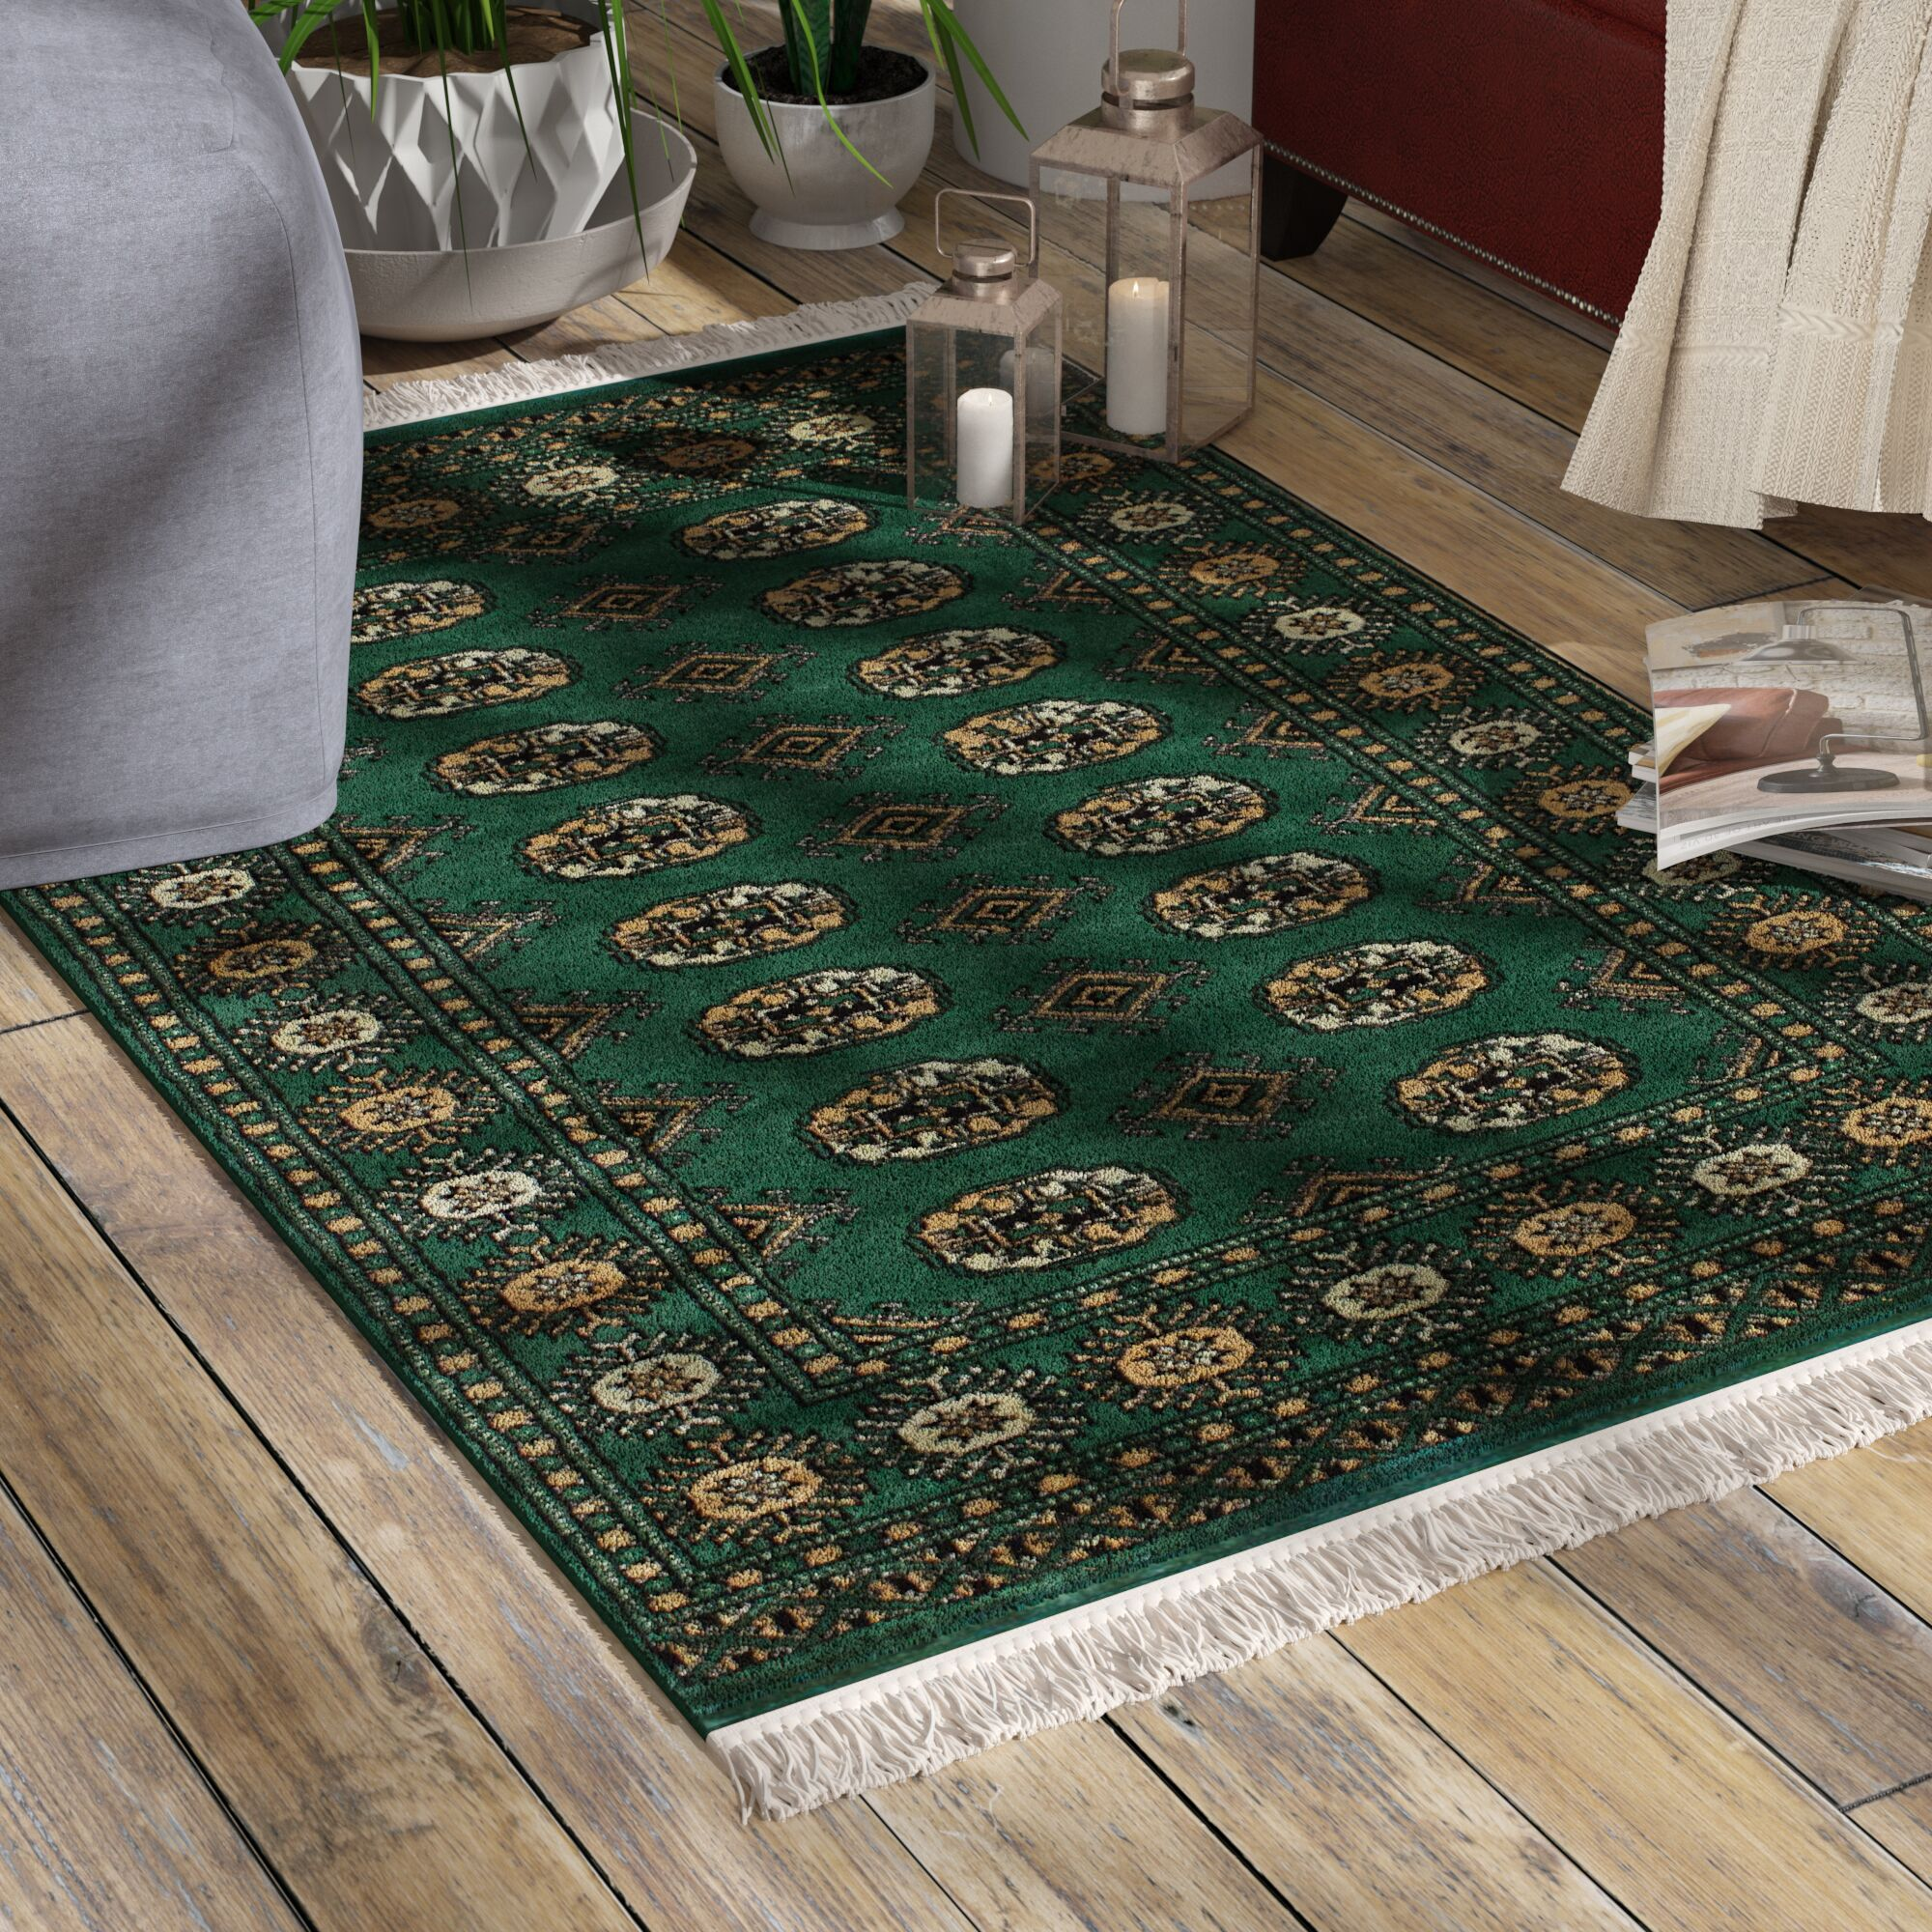 One-of-a-Kind Do Hand-Knotted Wool Green Indoor Area Rug